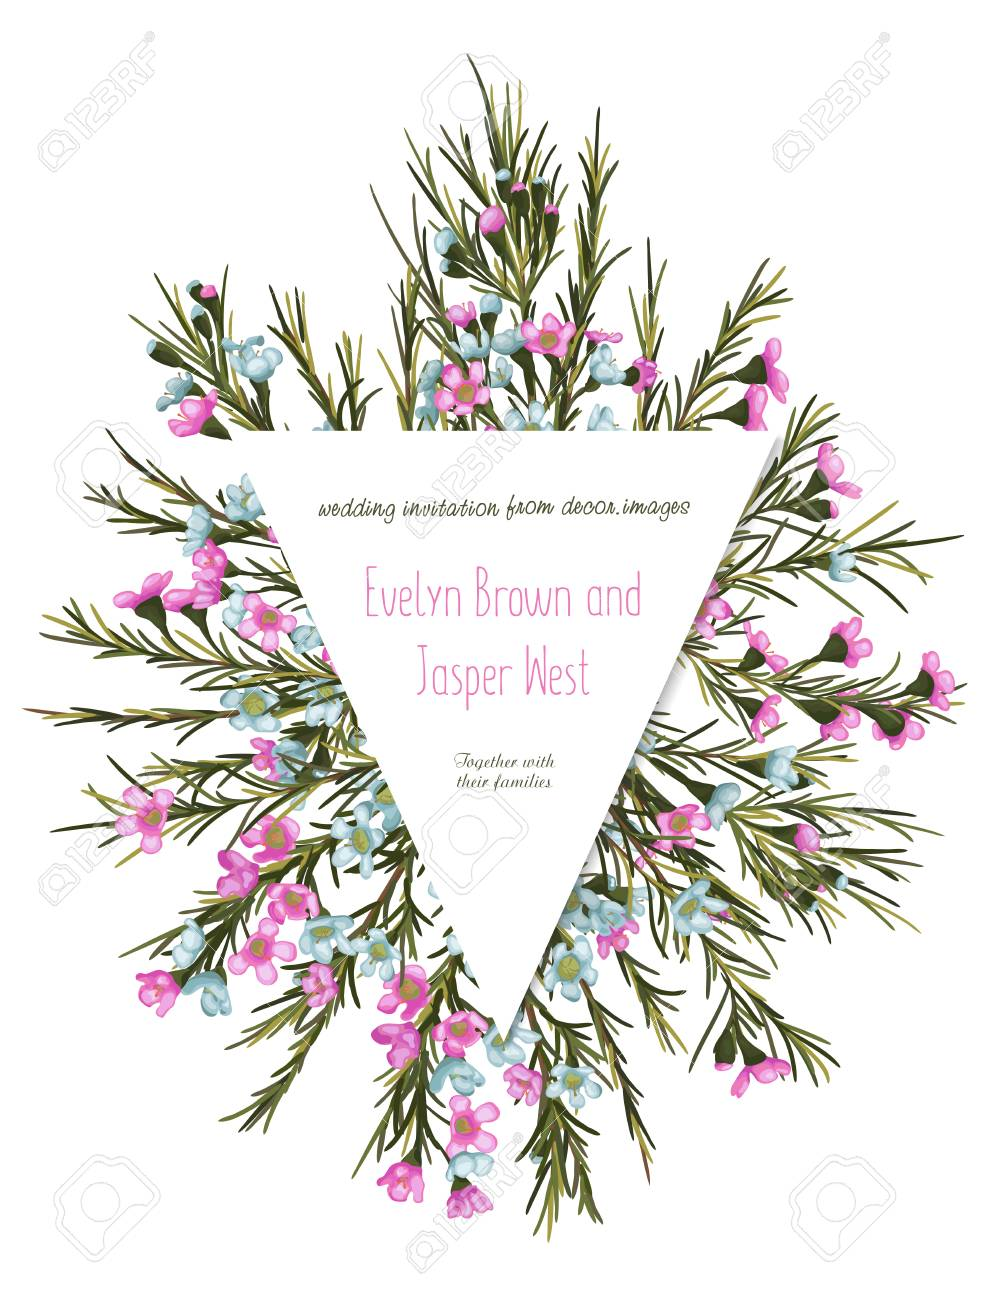 Cute Rustic Floral Greeting Card Wedding Invitation Banner Label Pink And Blue